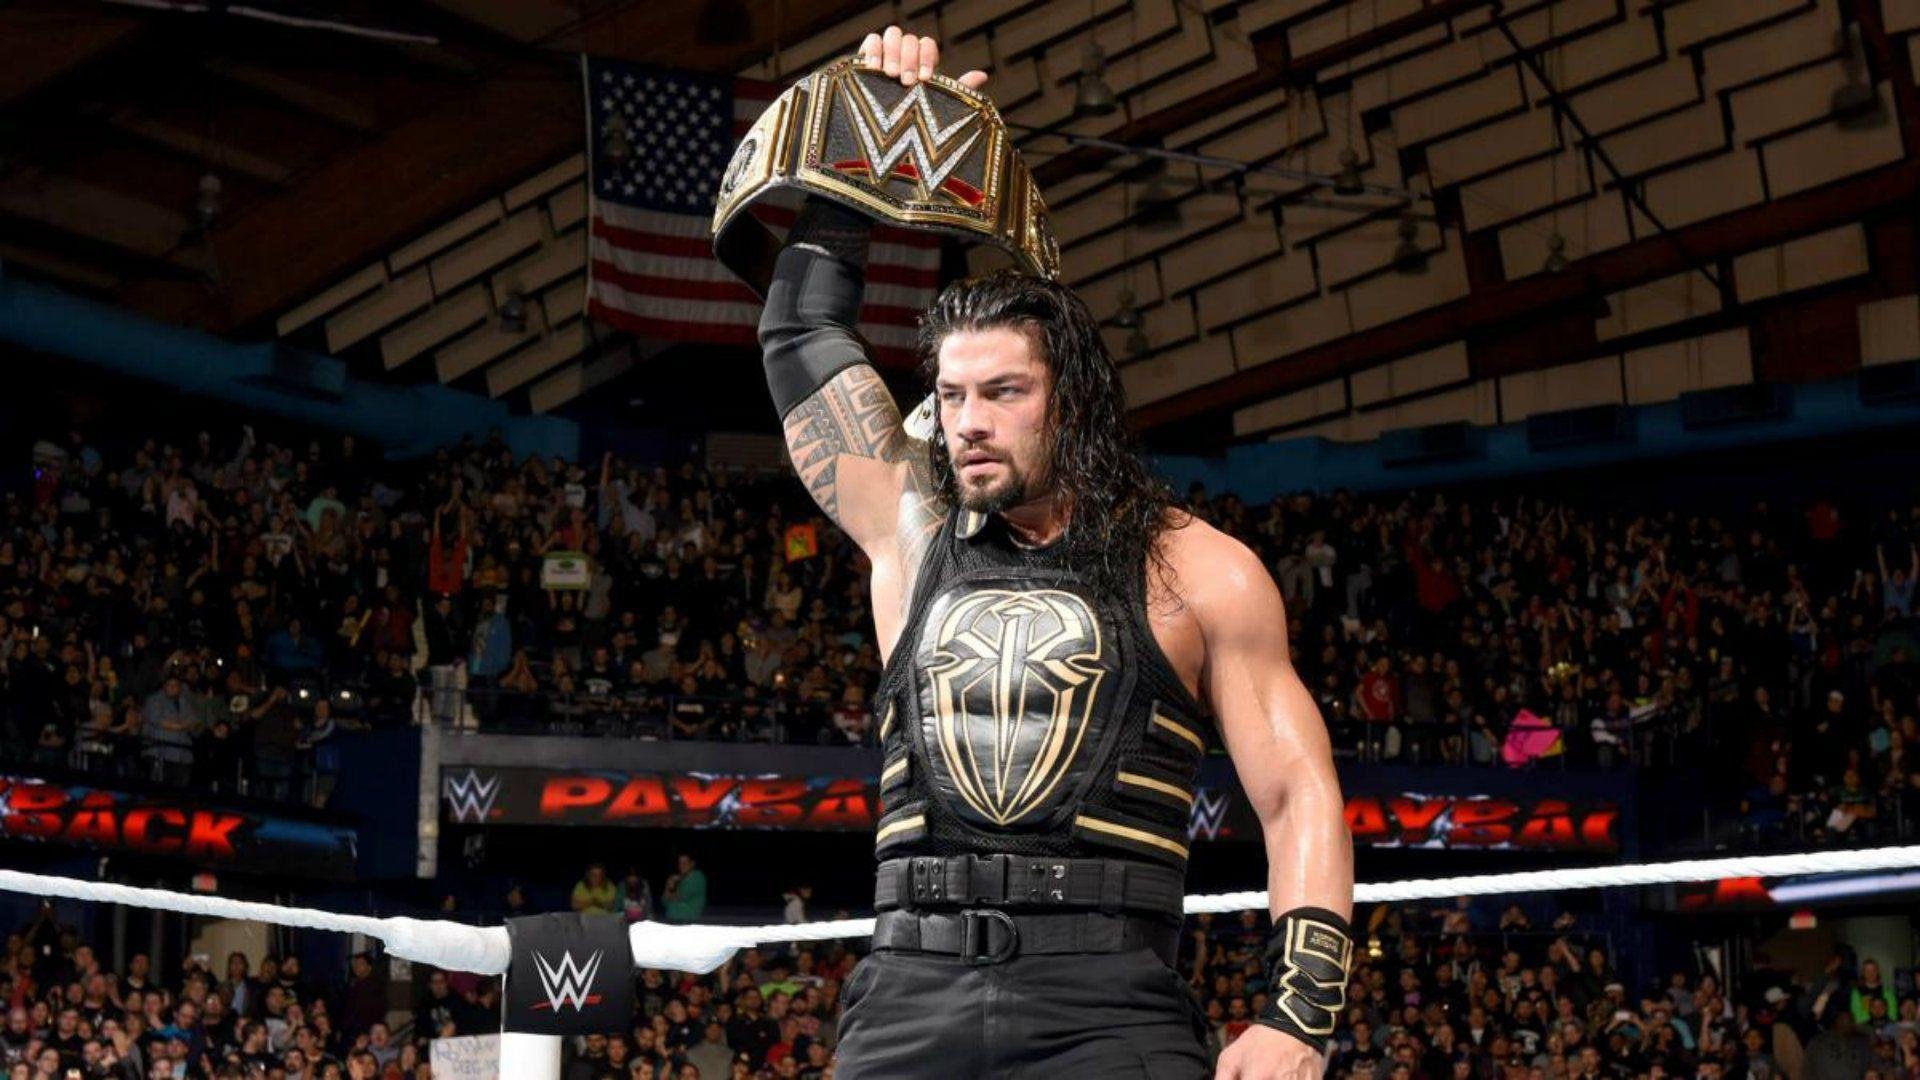 WWE Superstar Wrestler Roman Reigns HD Wallpapers | Most HD ...